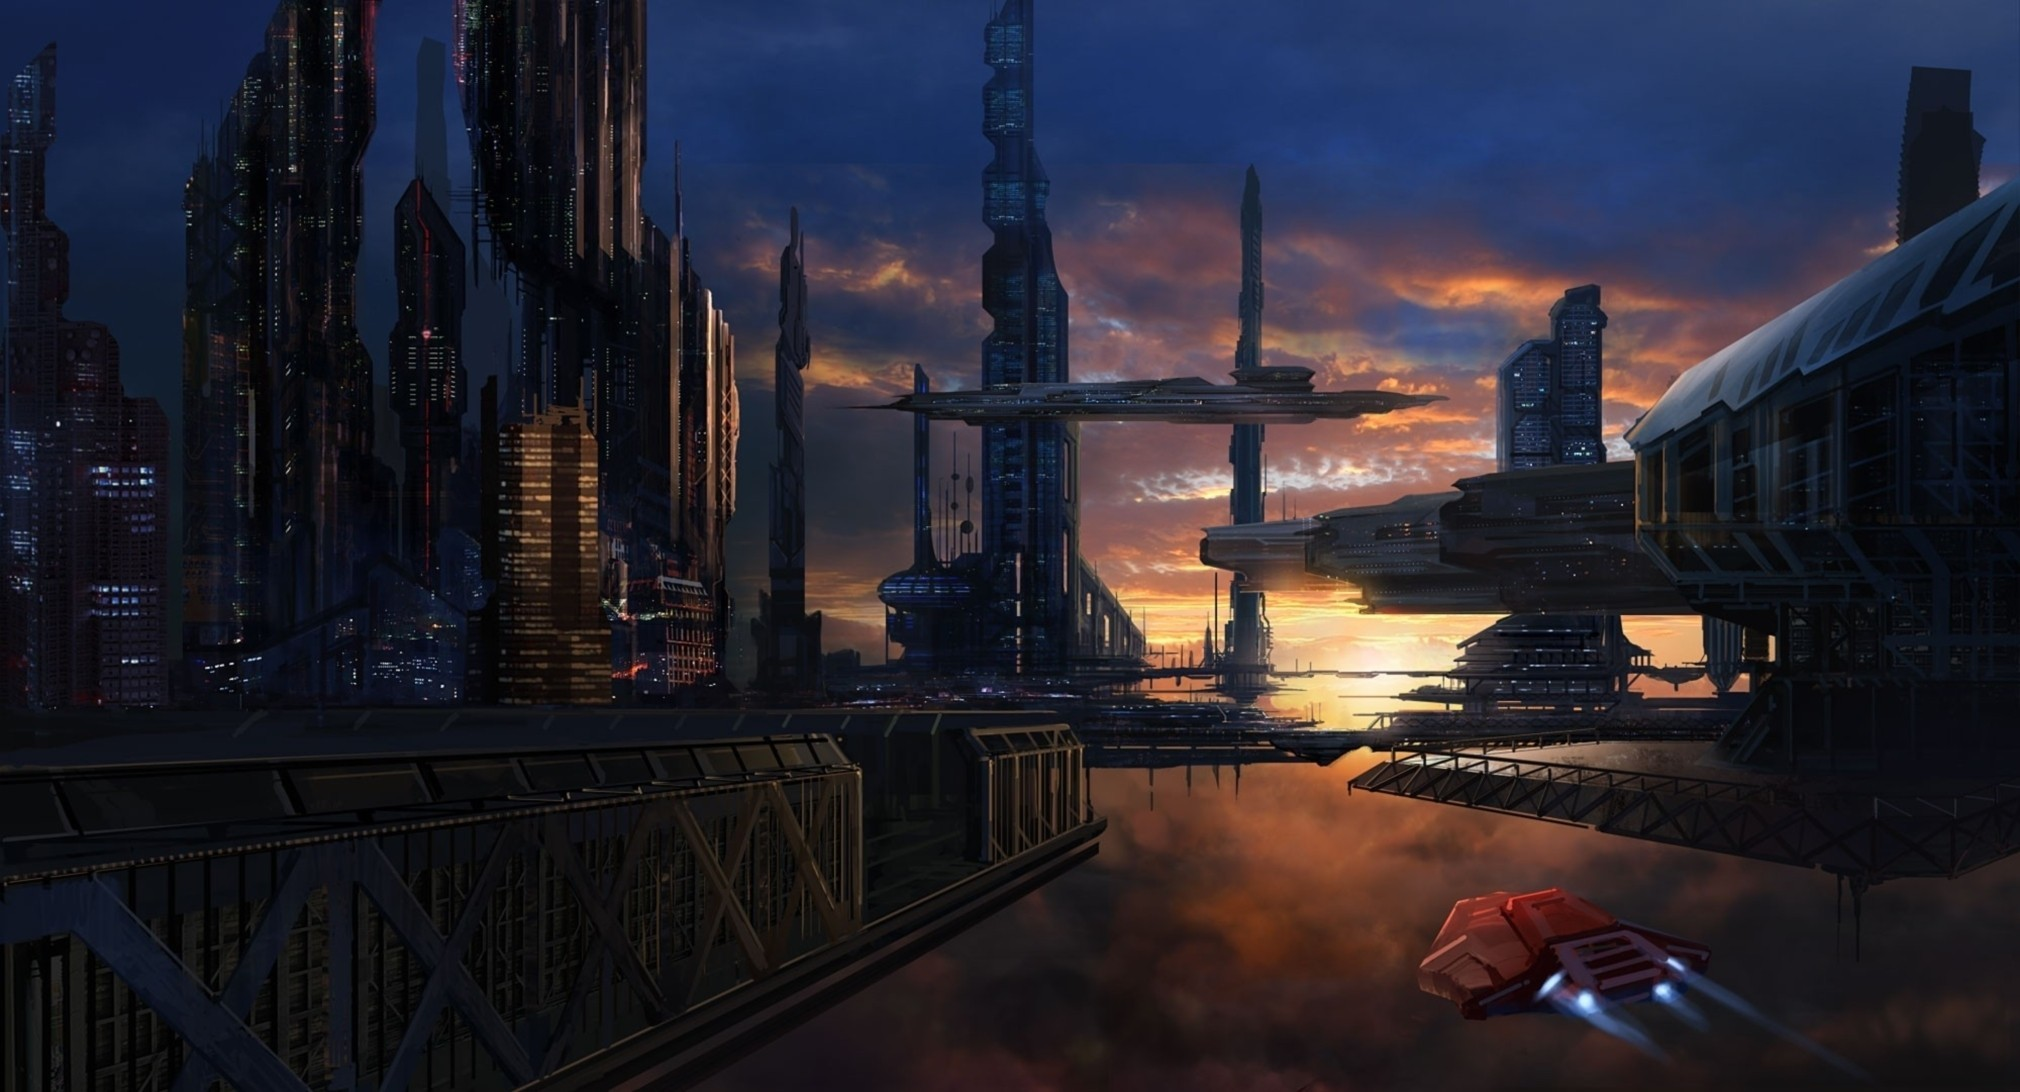 sunset cityscapes spaceships science HD Wallpaper